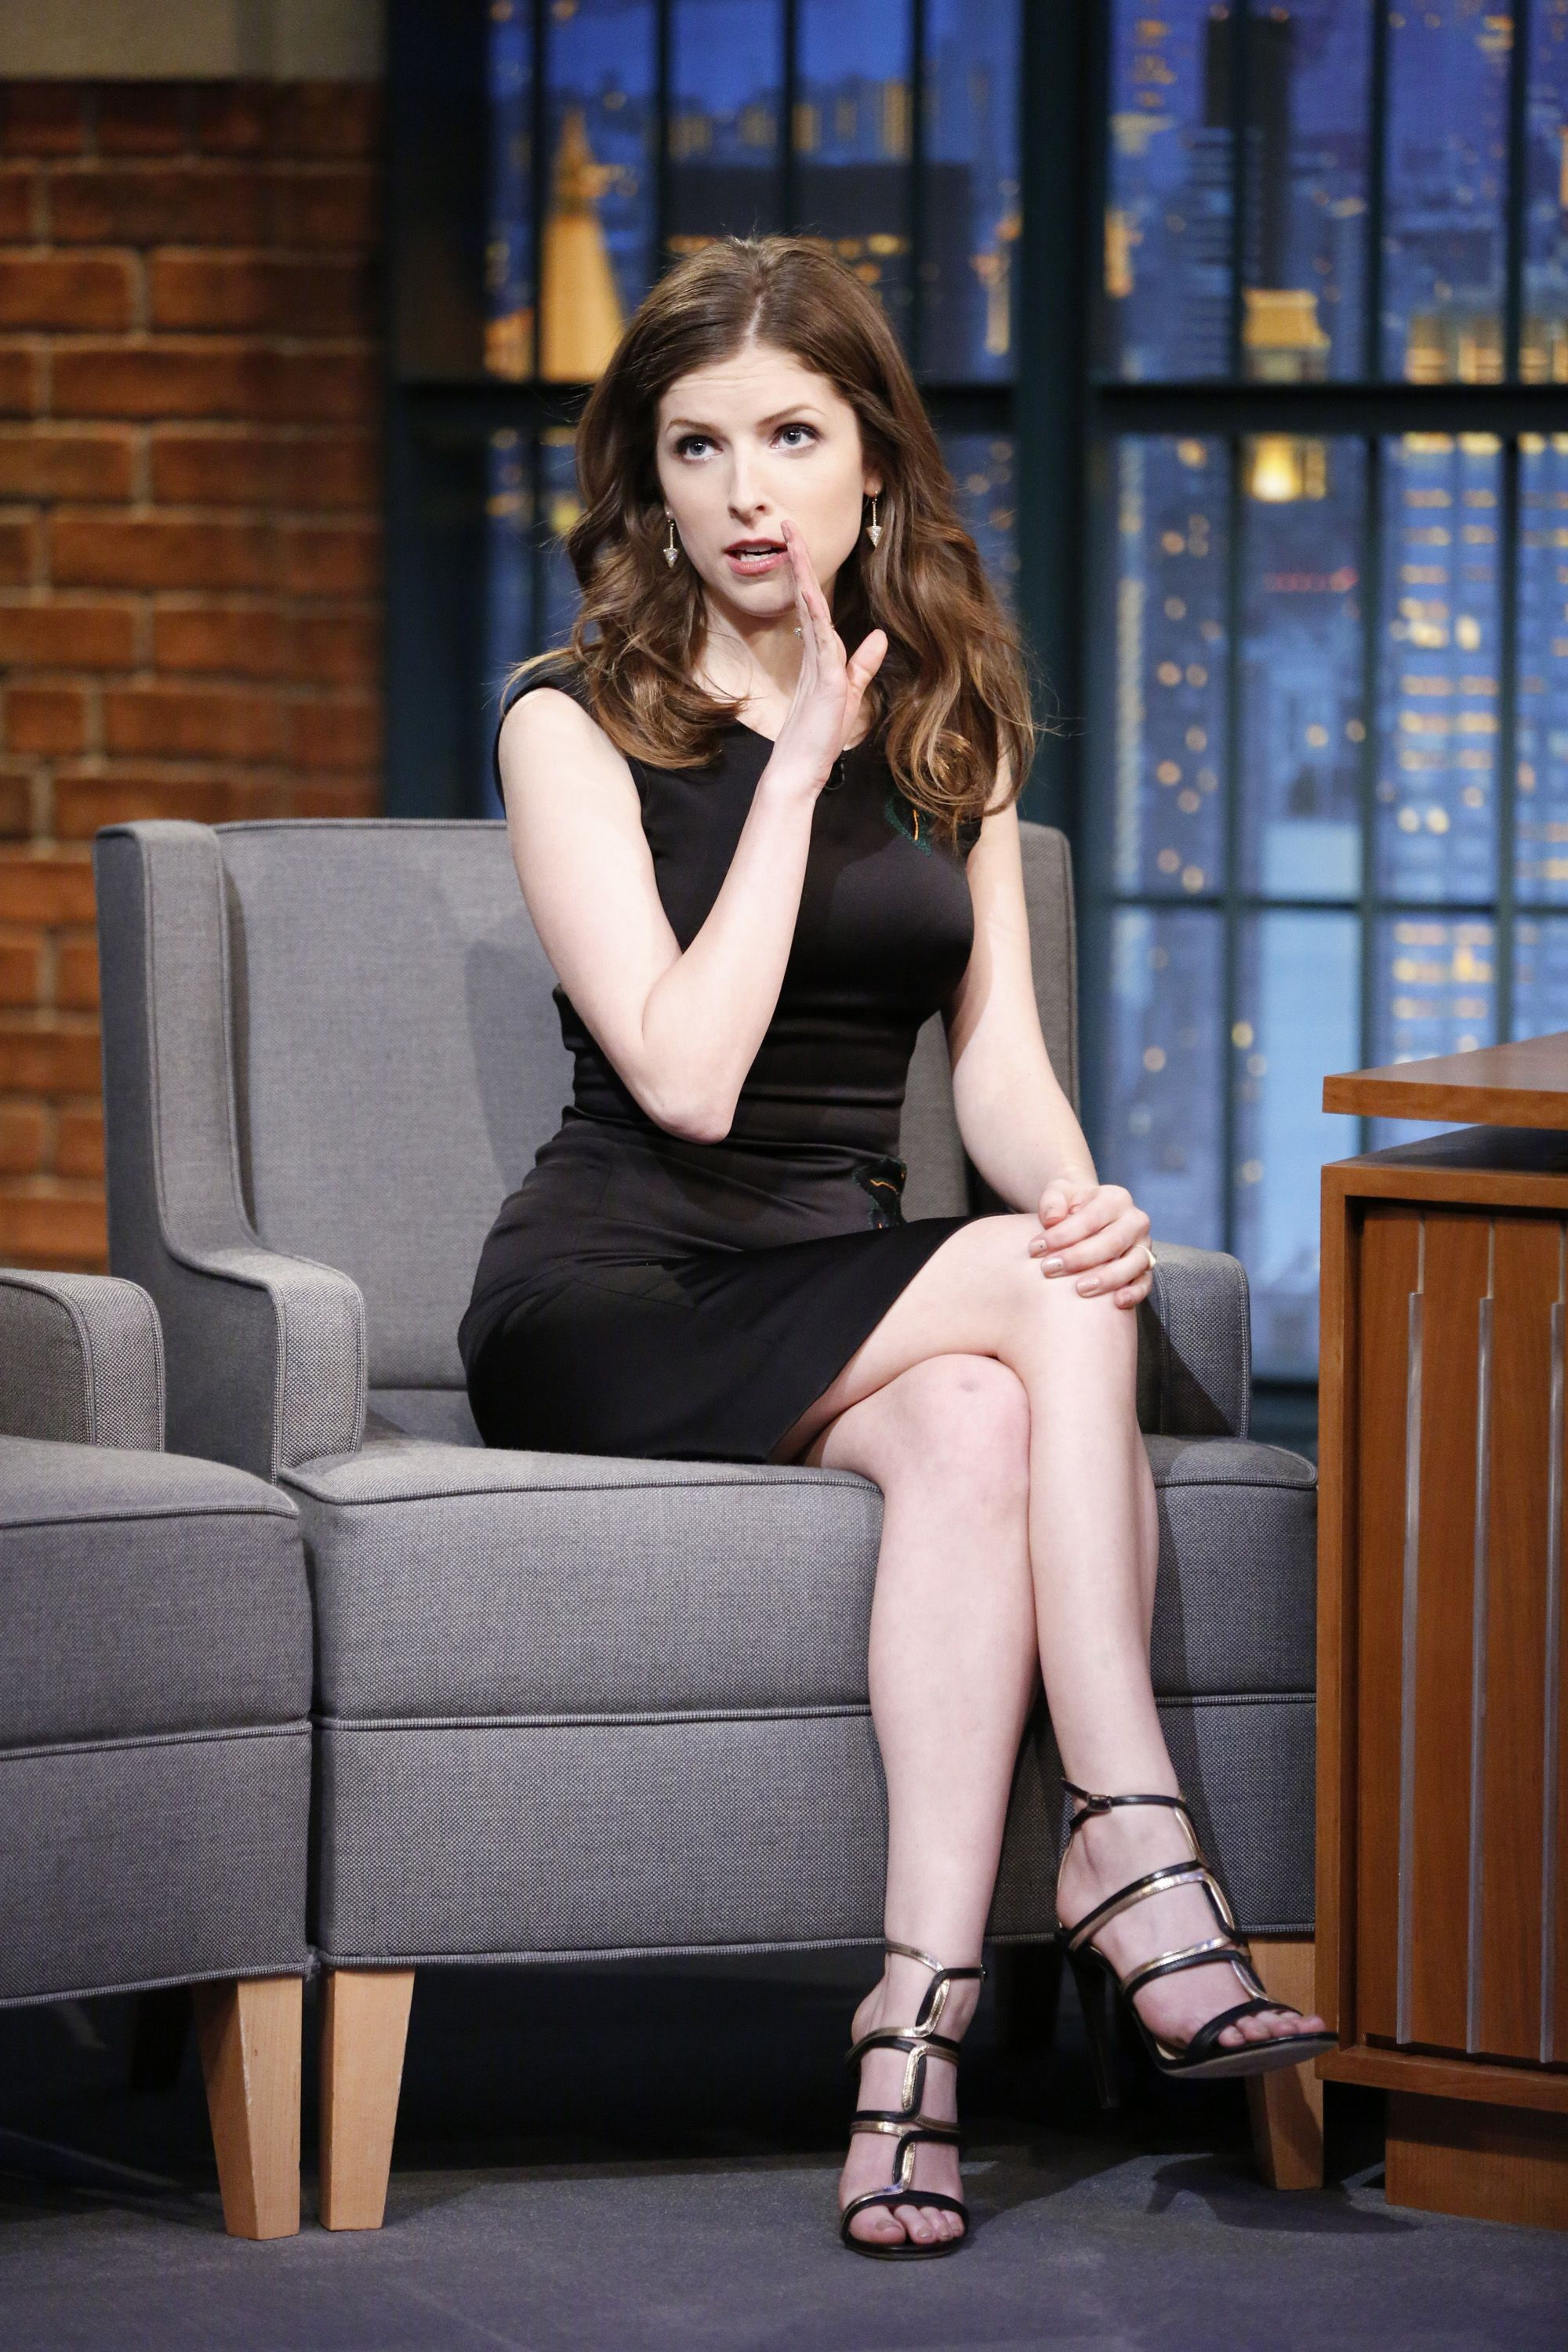 Anna Kendrick Porno Video Filtrado anna kendrick is just not that into the royal baby